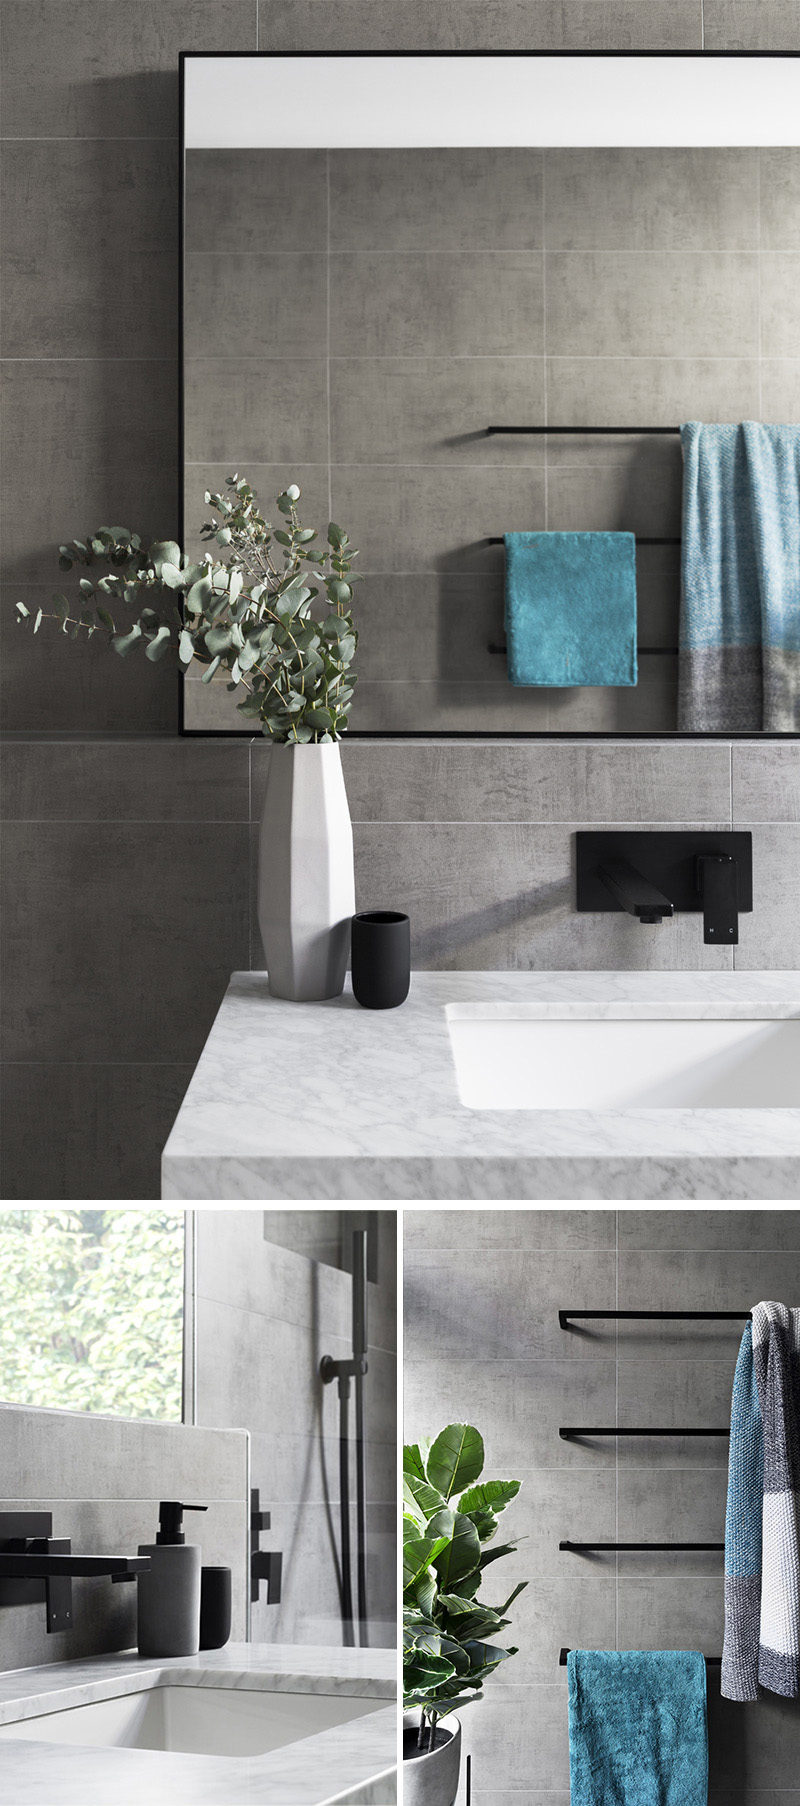 In This Modern Grey And White Bathroom Matte Black Accents Like The Hardware Towel